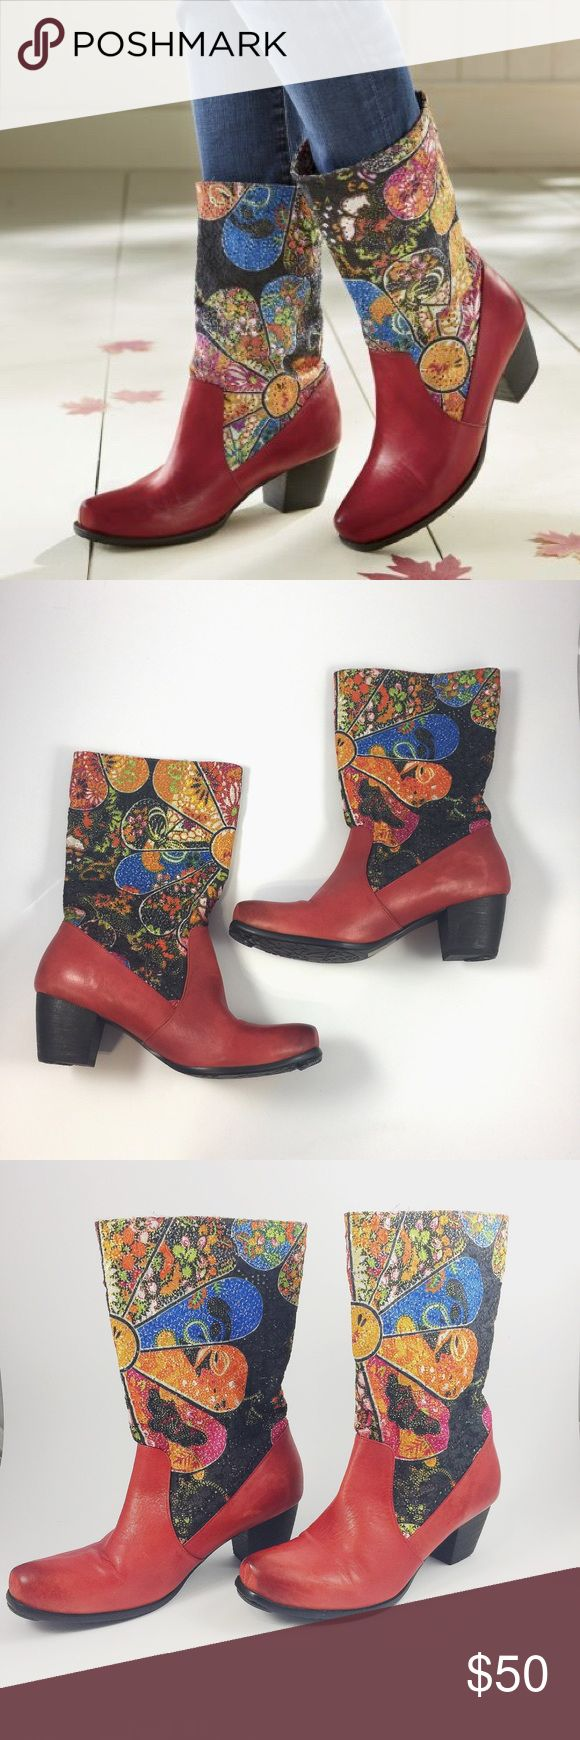 "Spring Step L'artiste Ankle Boots-Manuella The beautiful embroidered flowers will definitely get you compliments. These boots can be worn with a pair of jeans or a dress. Leather and fabric upper. 2"" heel. Only tried on. In excellent condition. Make me an offer Spring Step L'artiste Shoes Ankle Boots & Booties"